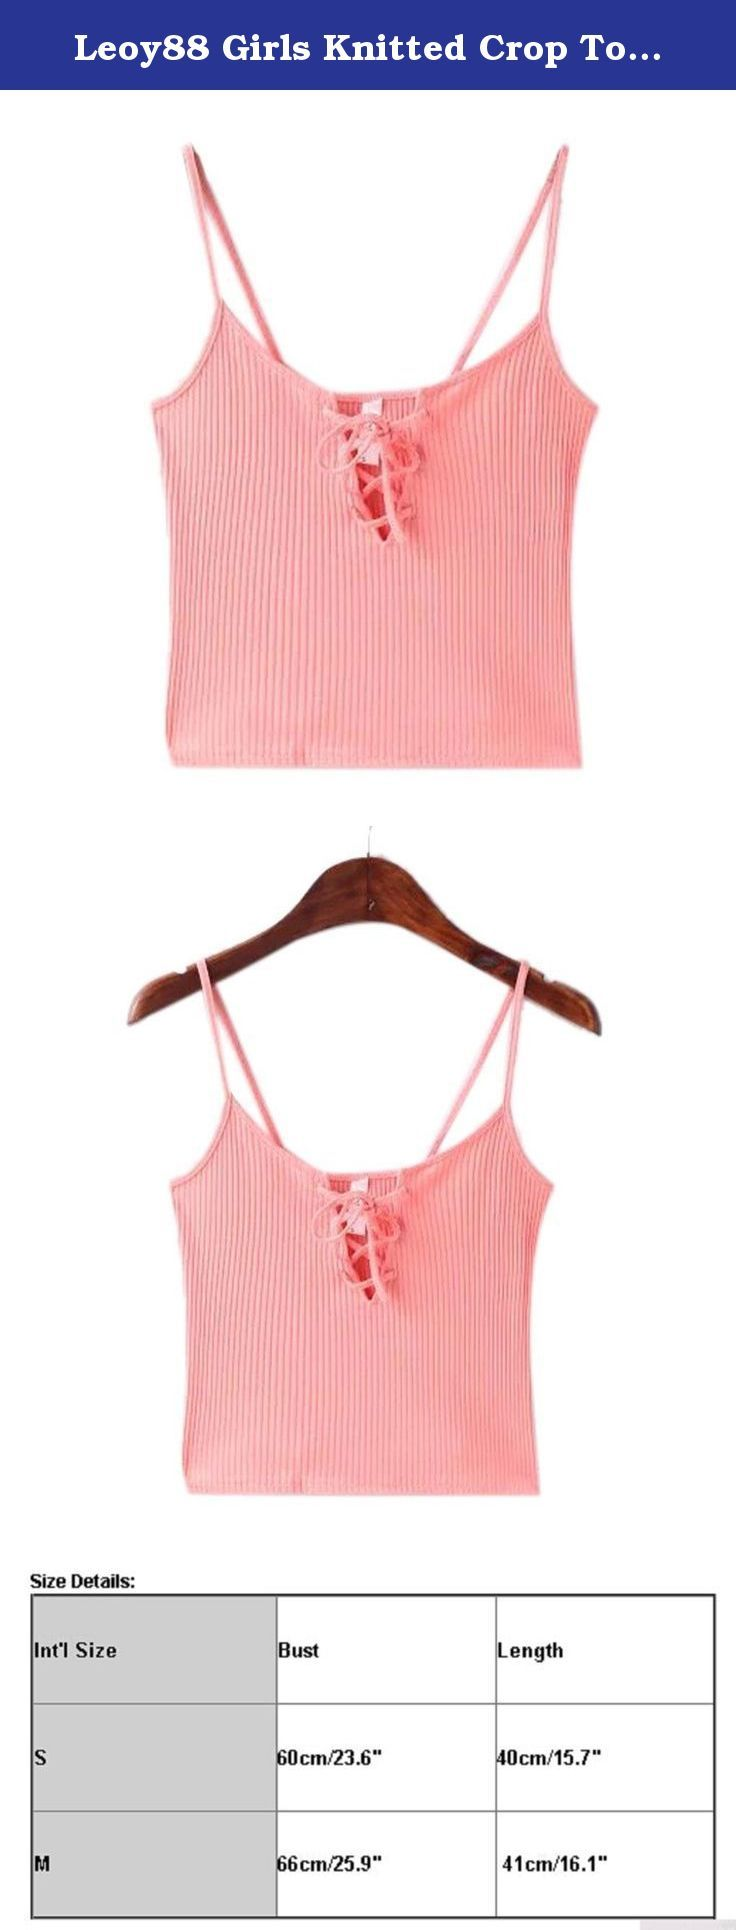 "Leoy88 Girls Knitted Crop Tops Cami Tank Tops Small Size (S(Bust60cm/23.6""), Pink). ★Package include:1PC Vest Size Details:1 inch = 2.54 cm SizeS----Bust60cm/23.6""----Length40cm/15.7"" SizeM----Bust66cm/25.9""----Length41cm/16.1"" ★Any questions, please contact us, We will rely you within 24 hours ★We will ship in 1-2 days. we will speed the shipping, hope you can receive it soon. Don't worry ★Welcome to our New store :www.amazon.com/shops/leoy88 .We have lots of surprise!."